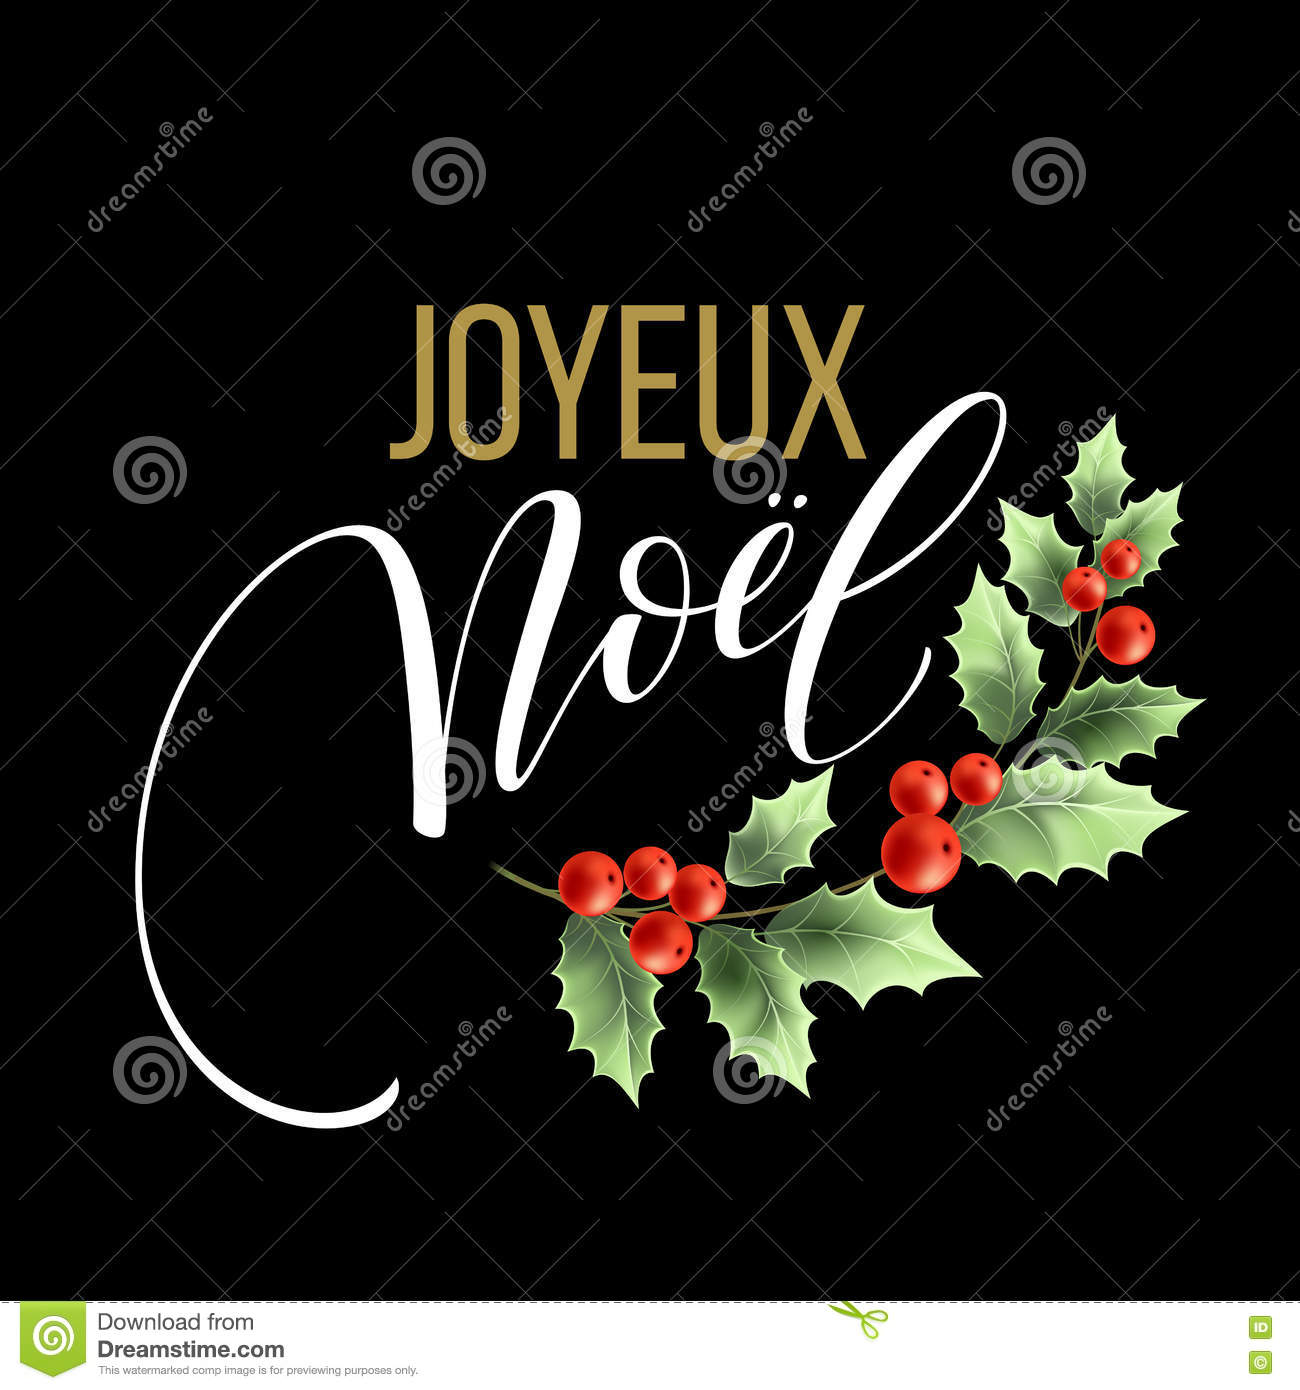 Merry christmas card template with greetings in french language download merry christmas card template with greetings in french language joyeux noel vector illustration m4hsunfo